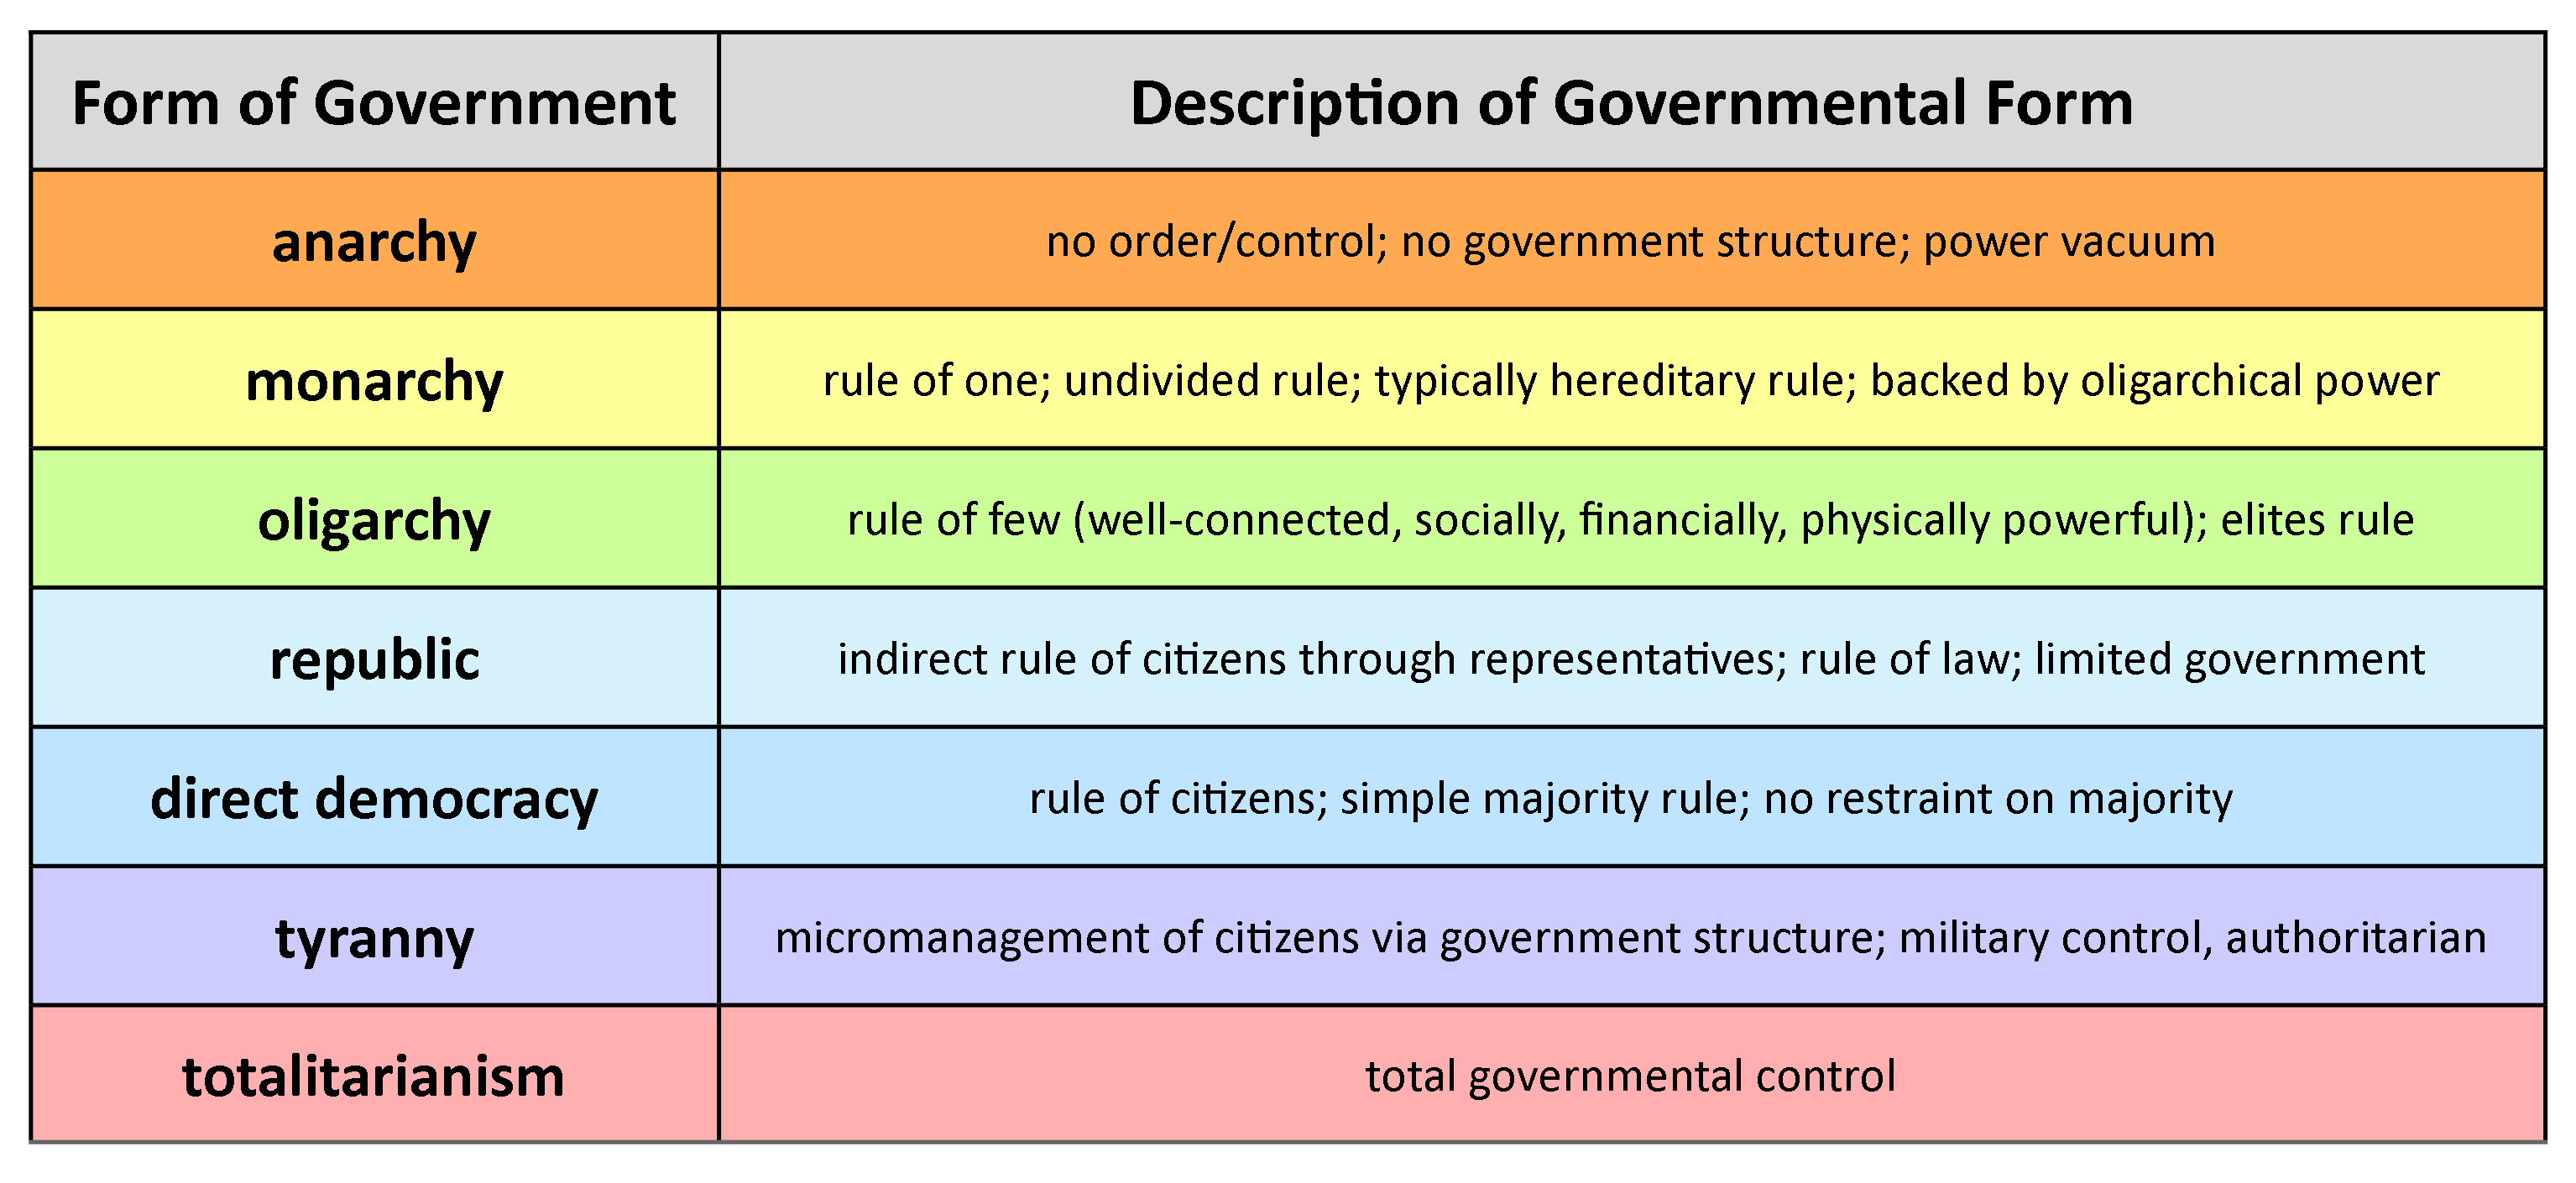 an analysis of the form of goverment The state leaders sought to form a powerful, yet fair federal government that protected the 3 branches of government: executive, legislative, judicial related.